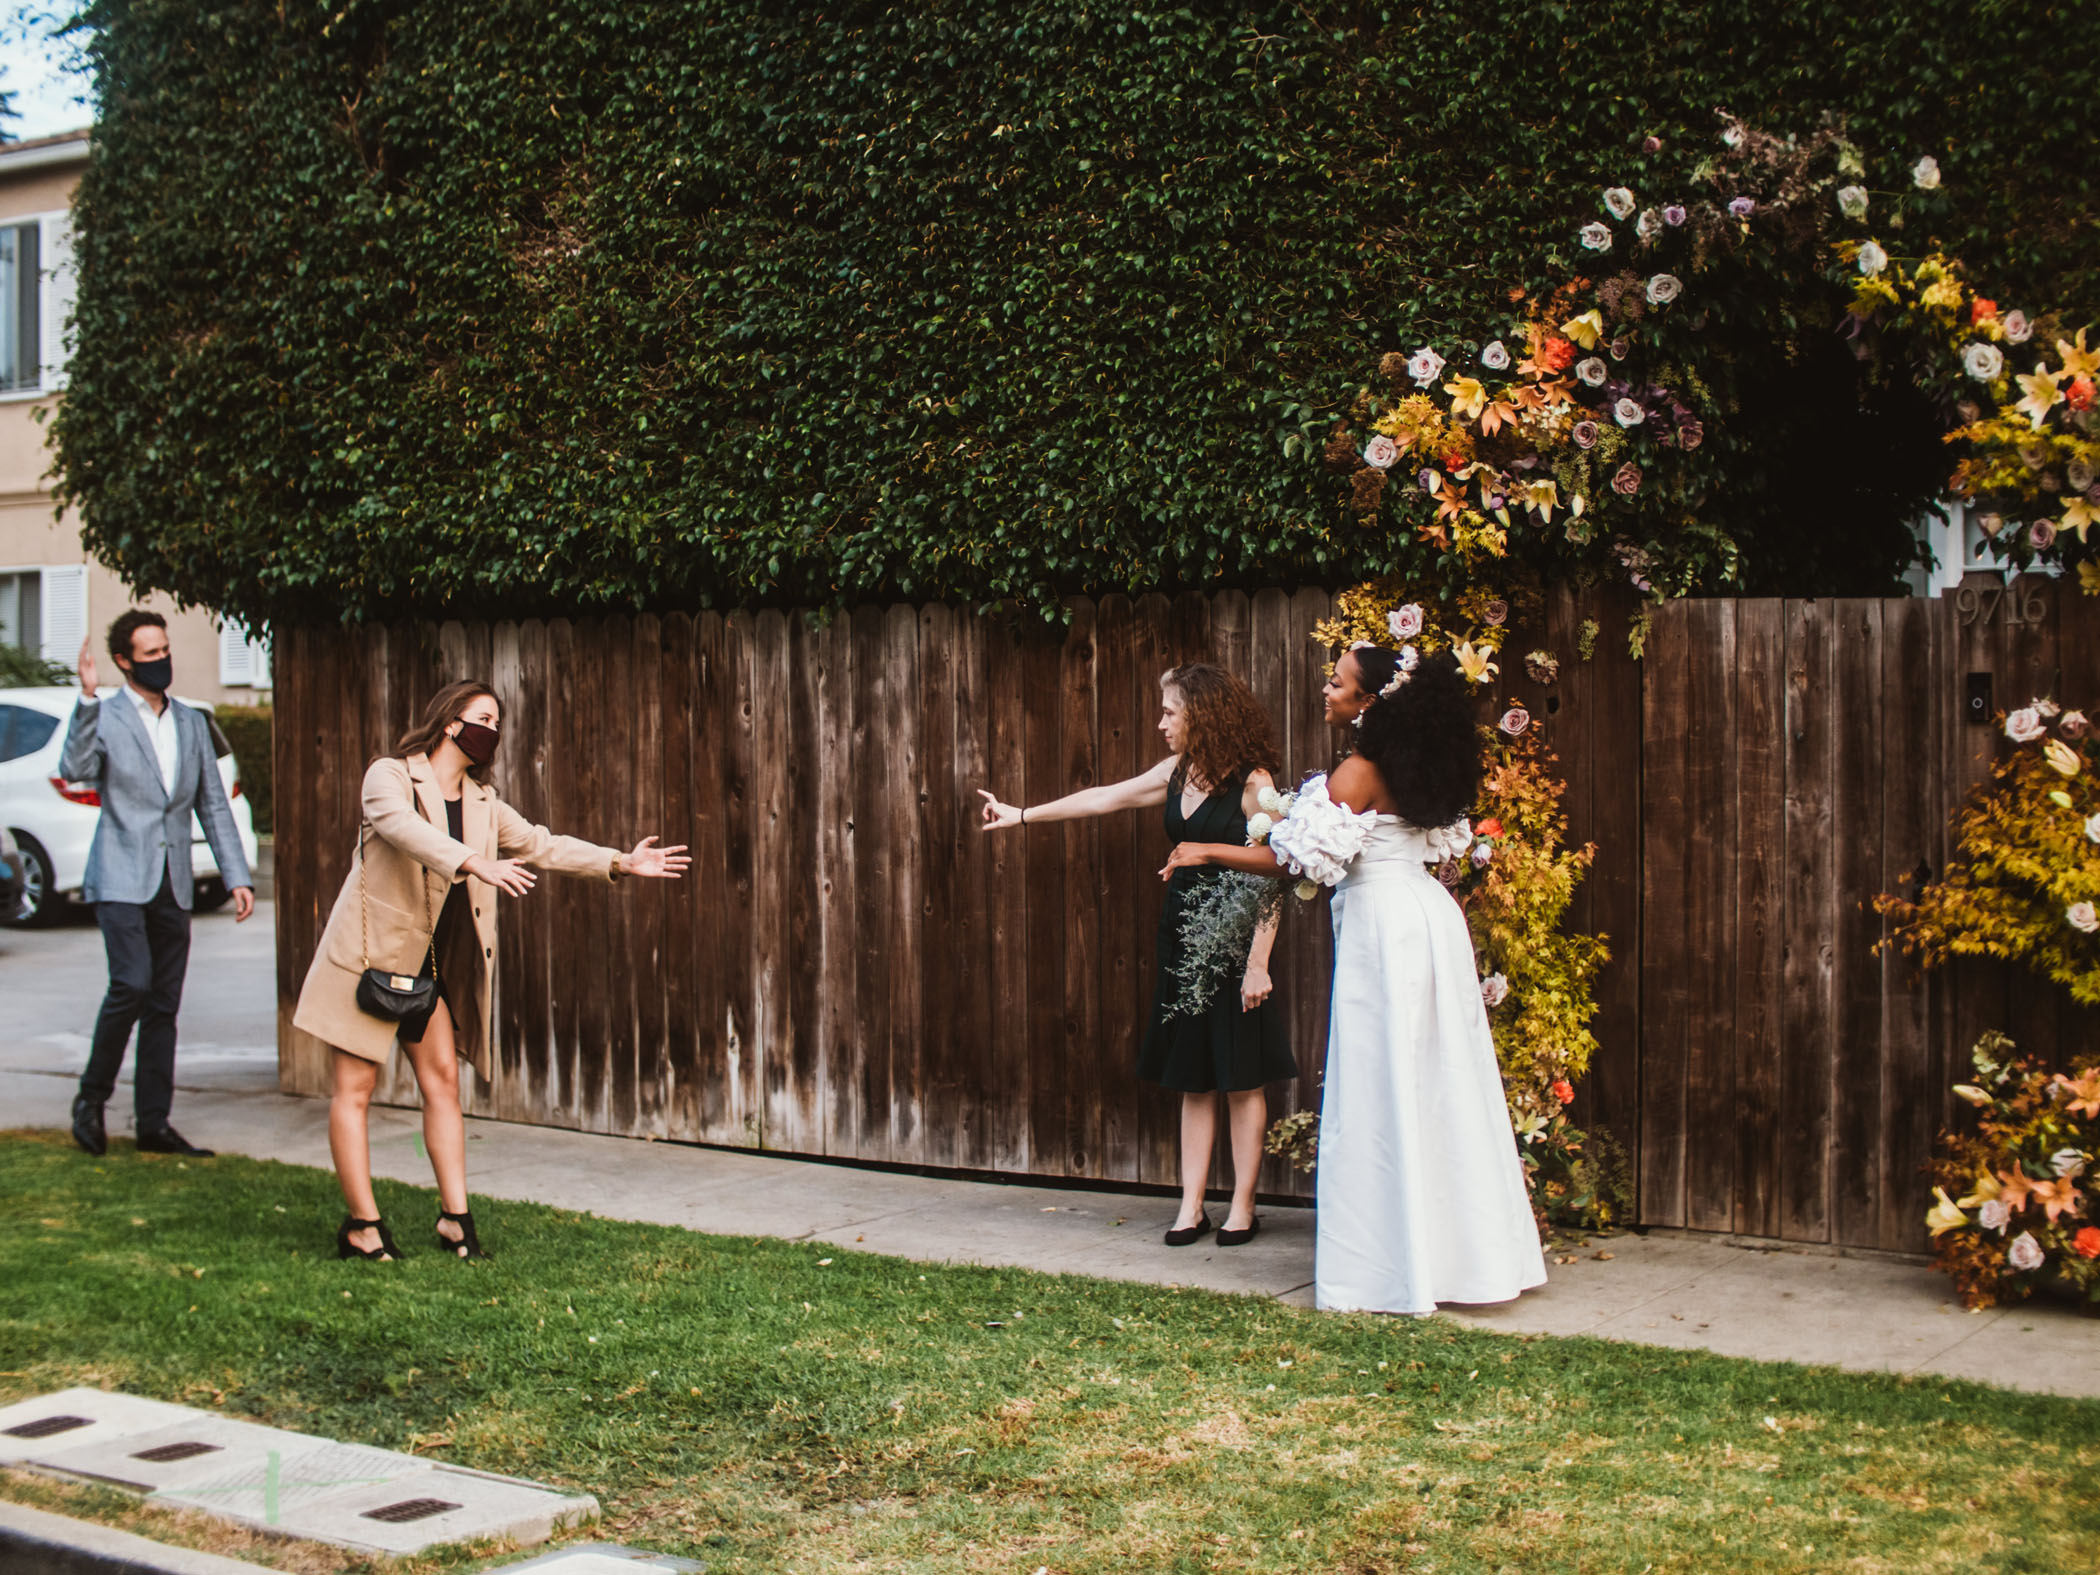 Masked wedding guests give a socially distant greeting